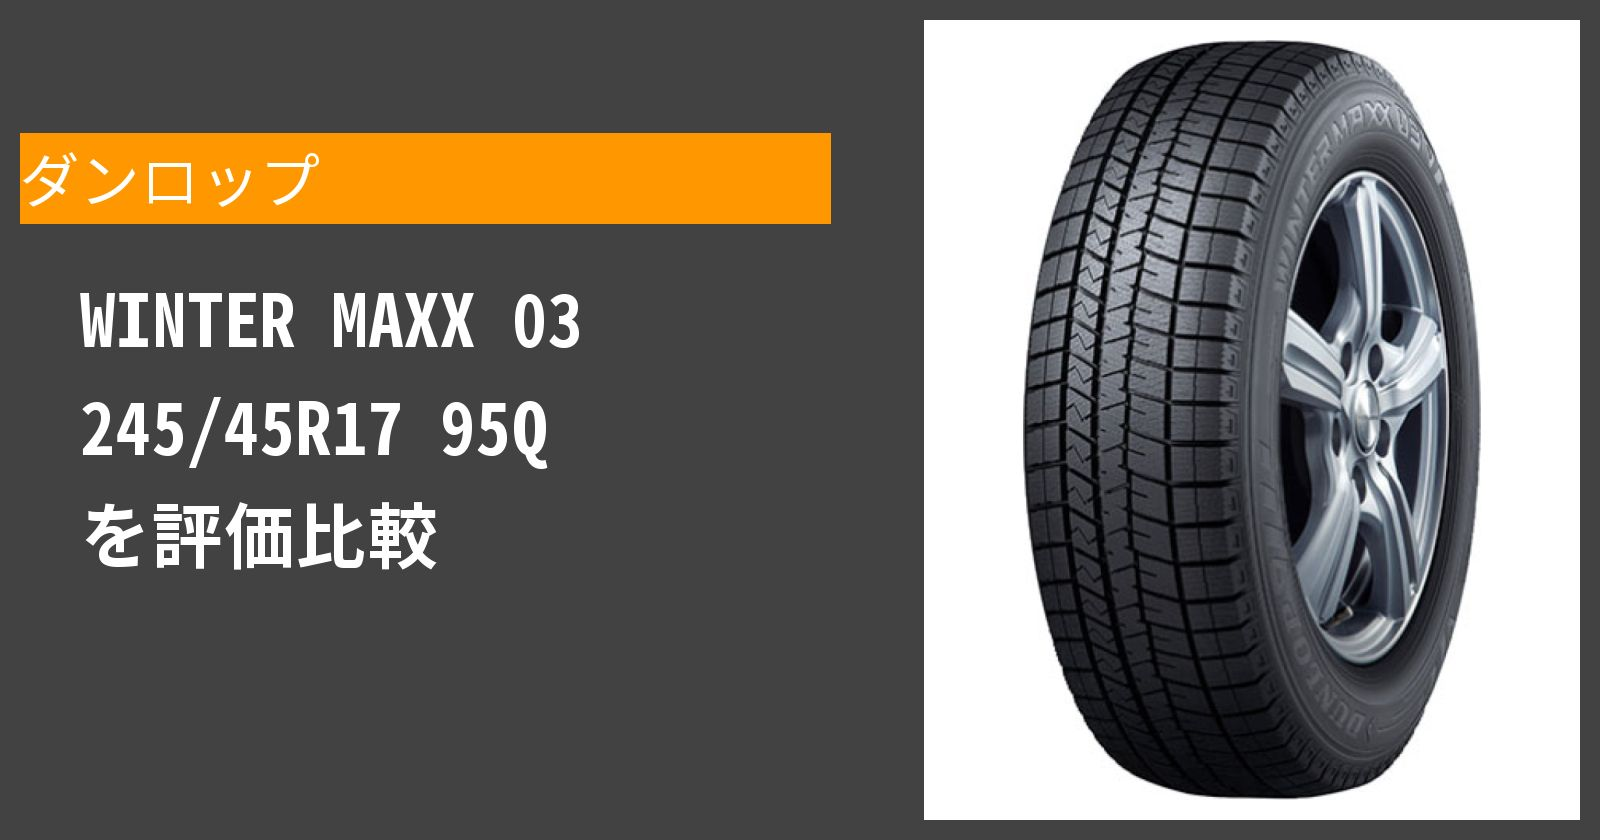 WINTER MAXX 03 245/45R17 95Qを徹底評価